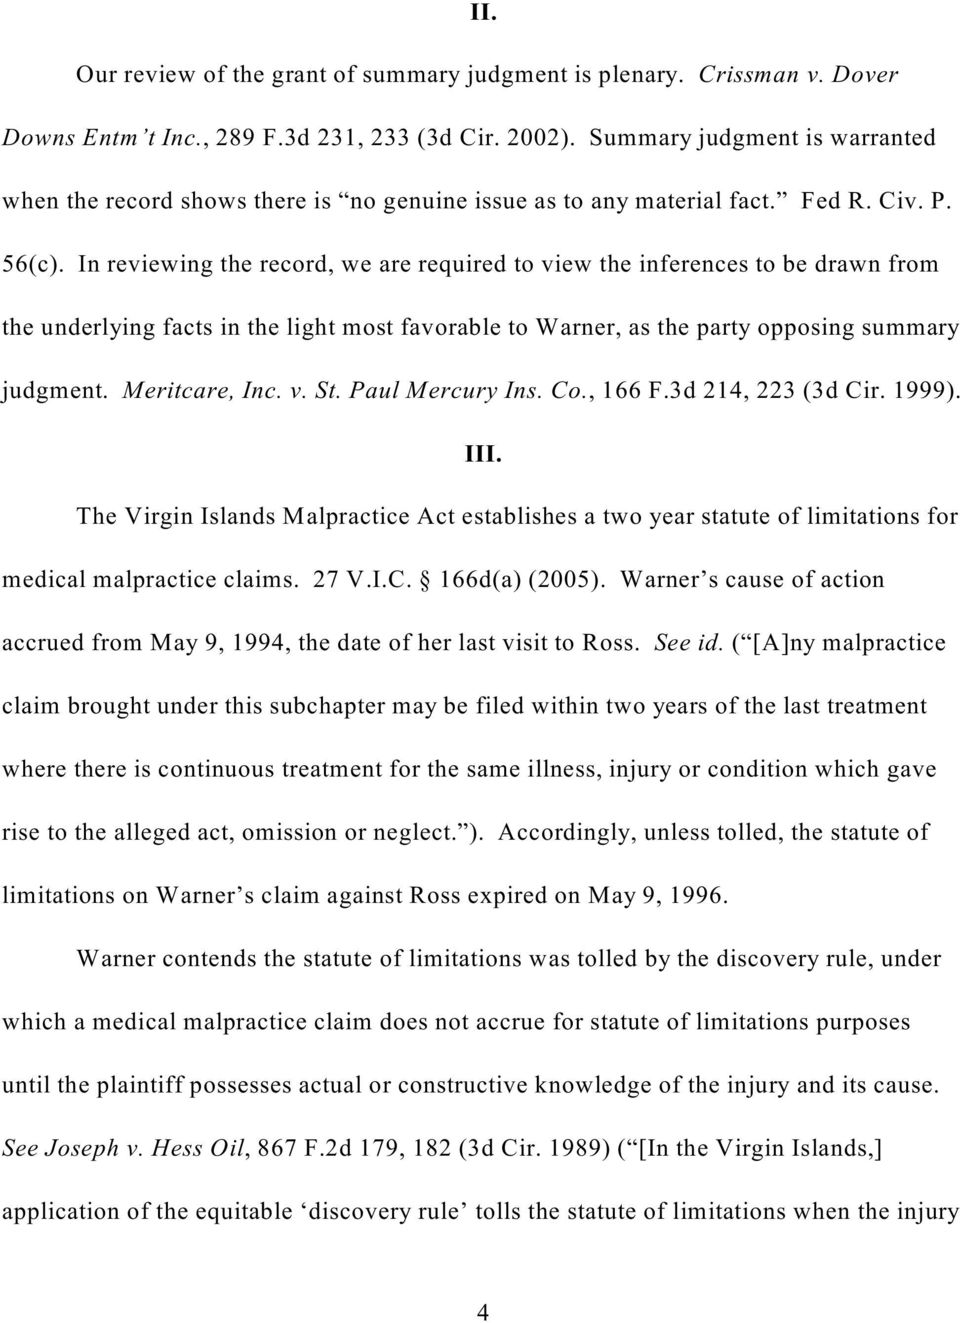 In reviewing the record, we are required to view the inferences to be drawn from the underlying facts in the light most favorable to Warner, as the party opposing summary judgment. Meritcare, Inc. v. St.